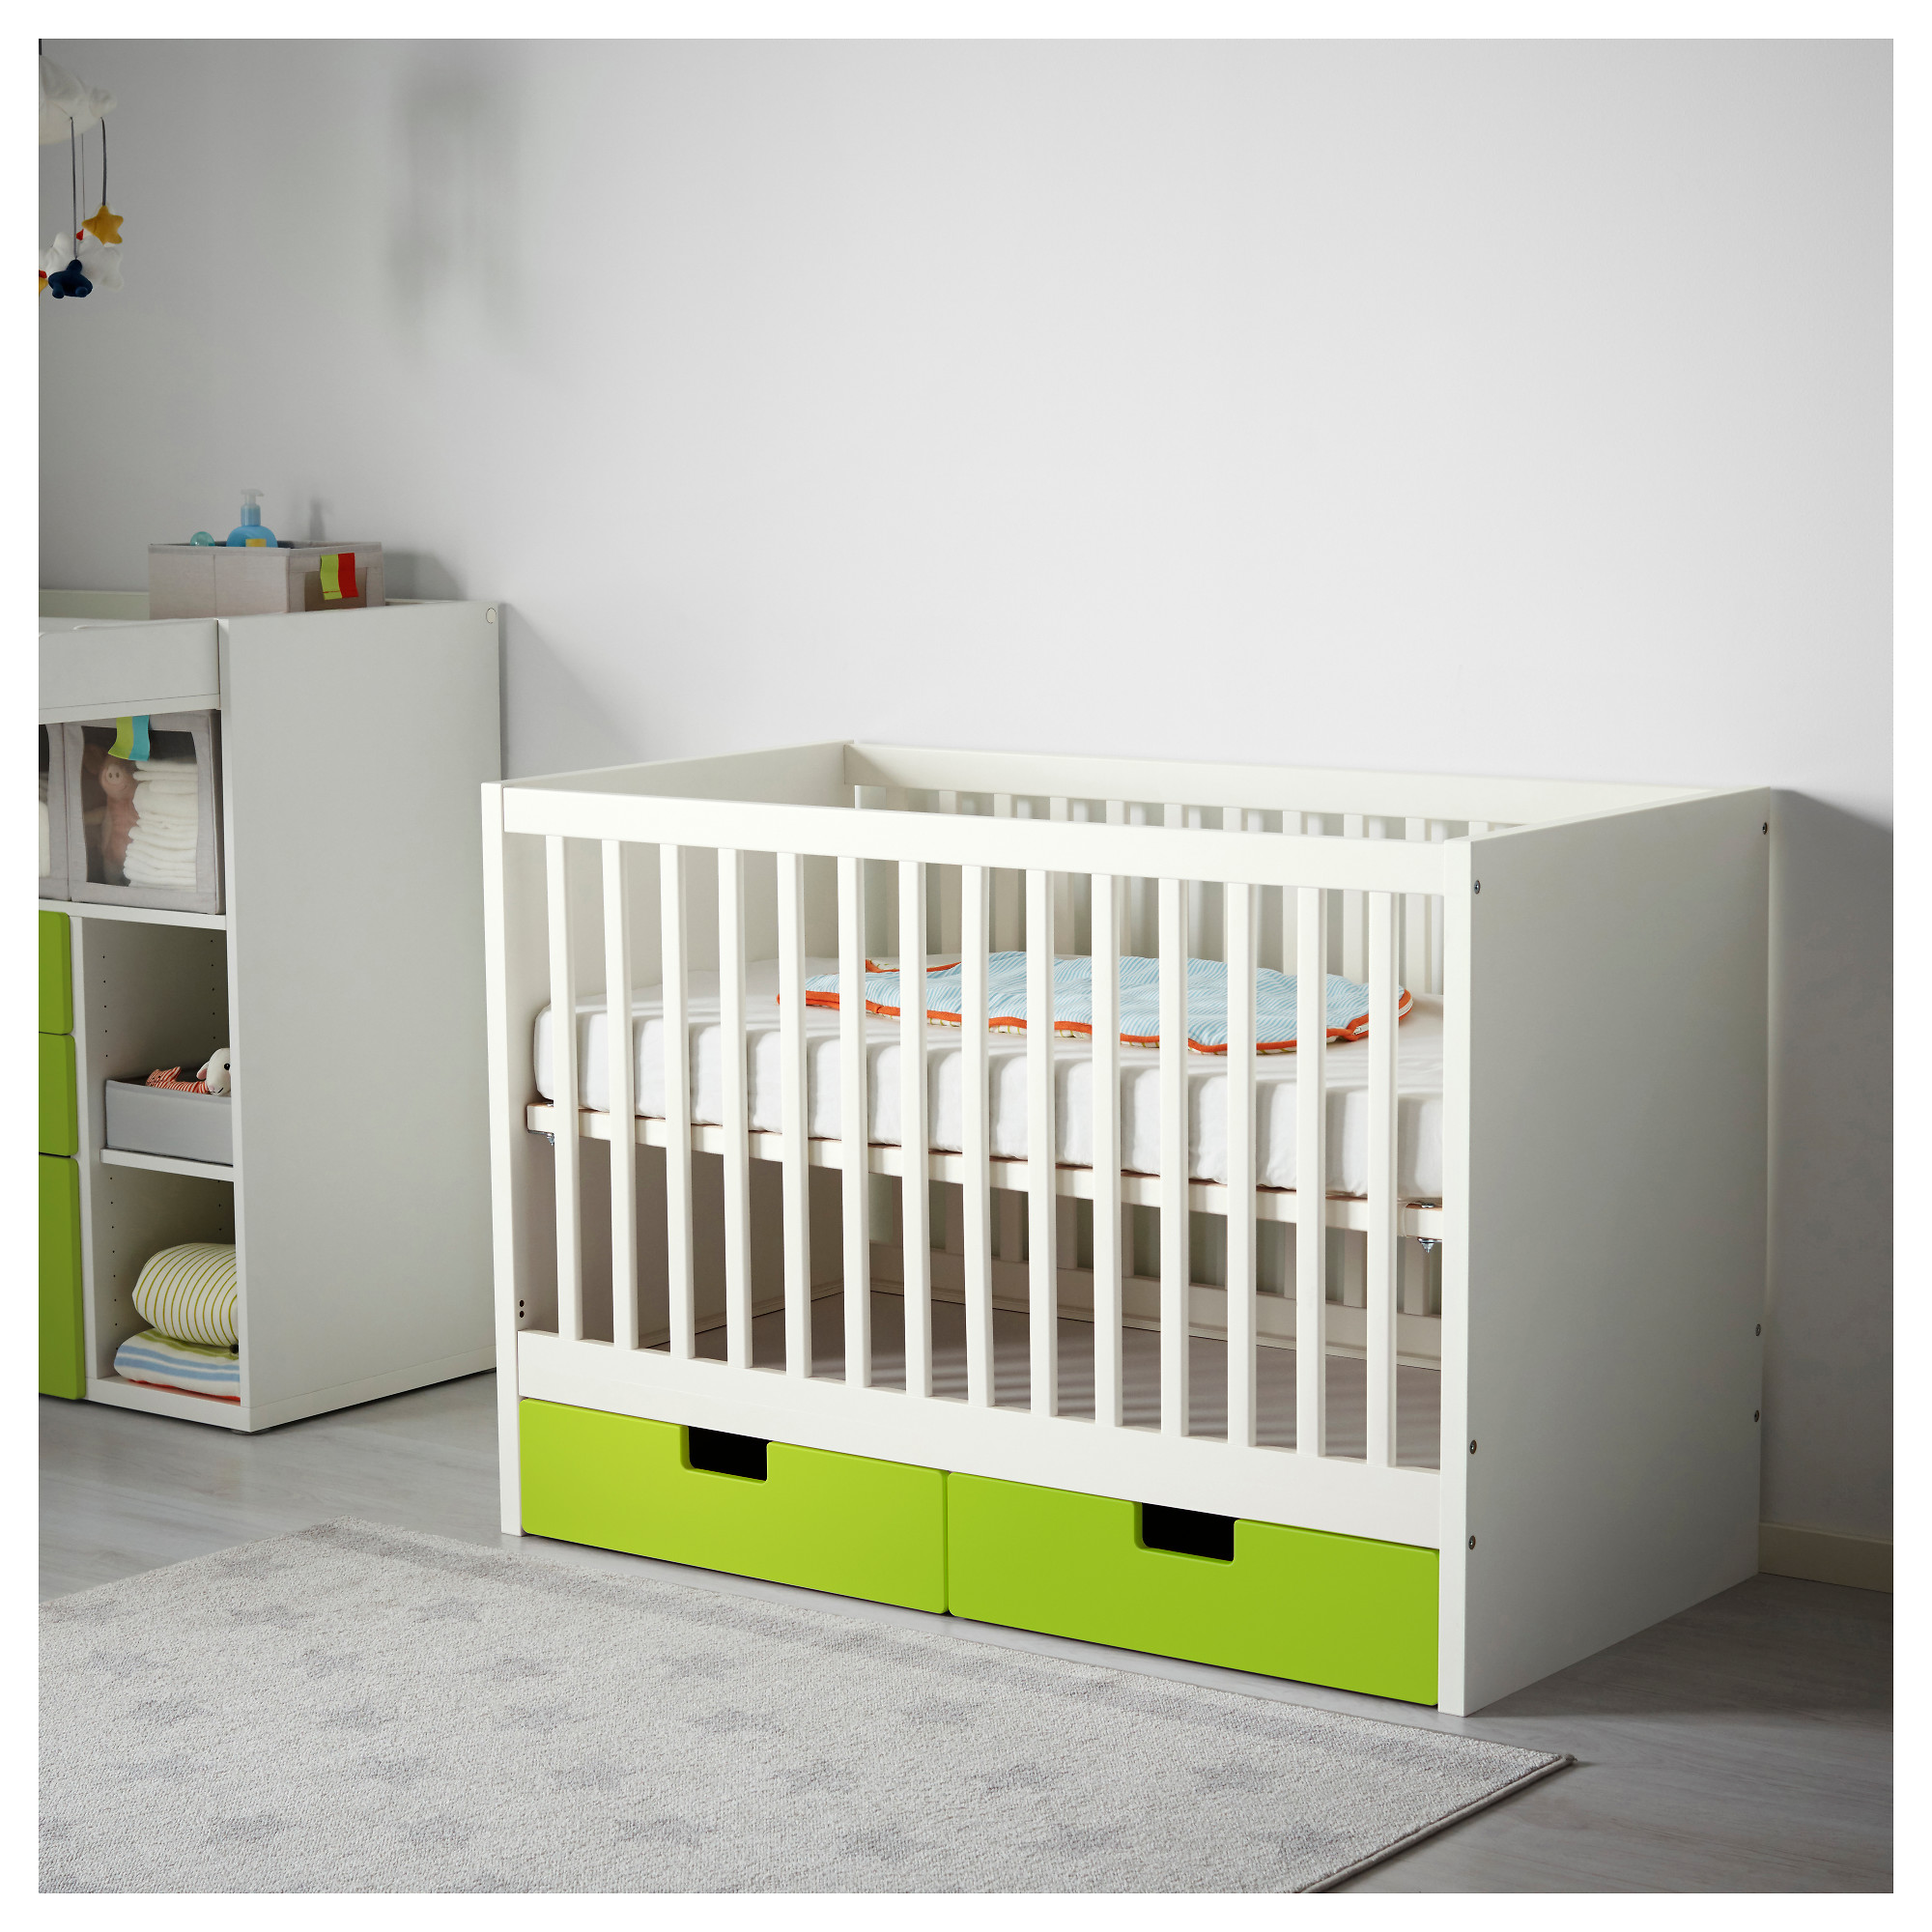 Baby Cots With Drop Sides Things To Remember Before You Buy Baby Cots For Your Baby